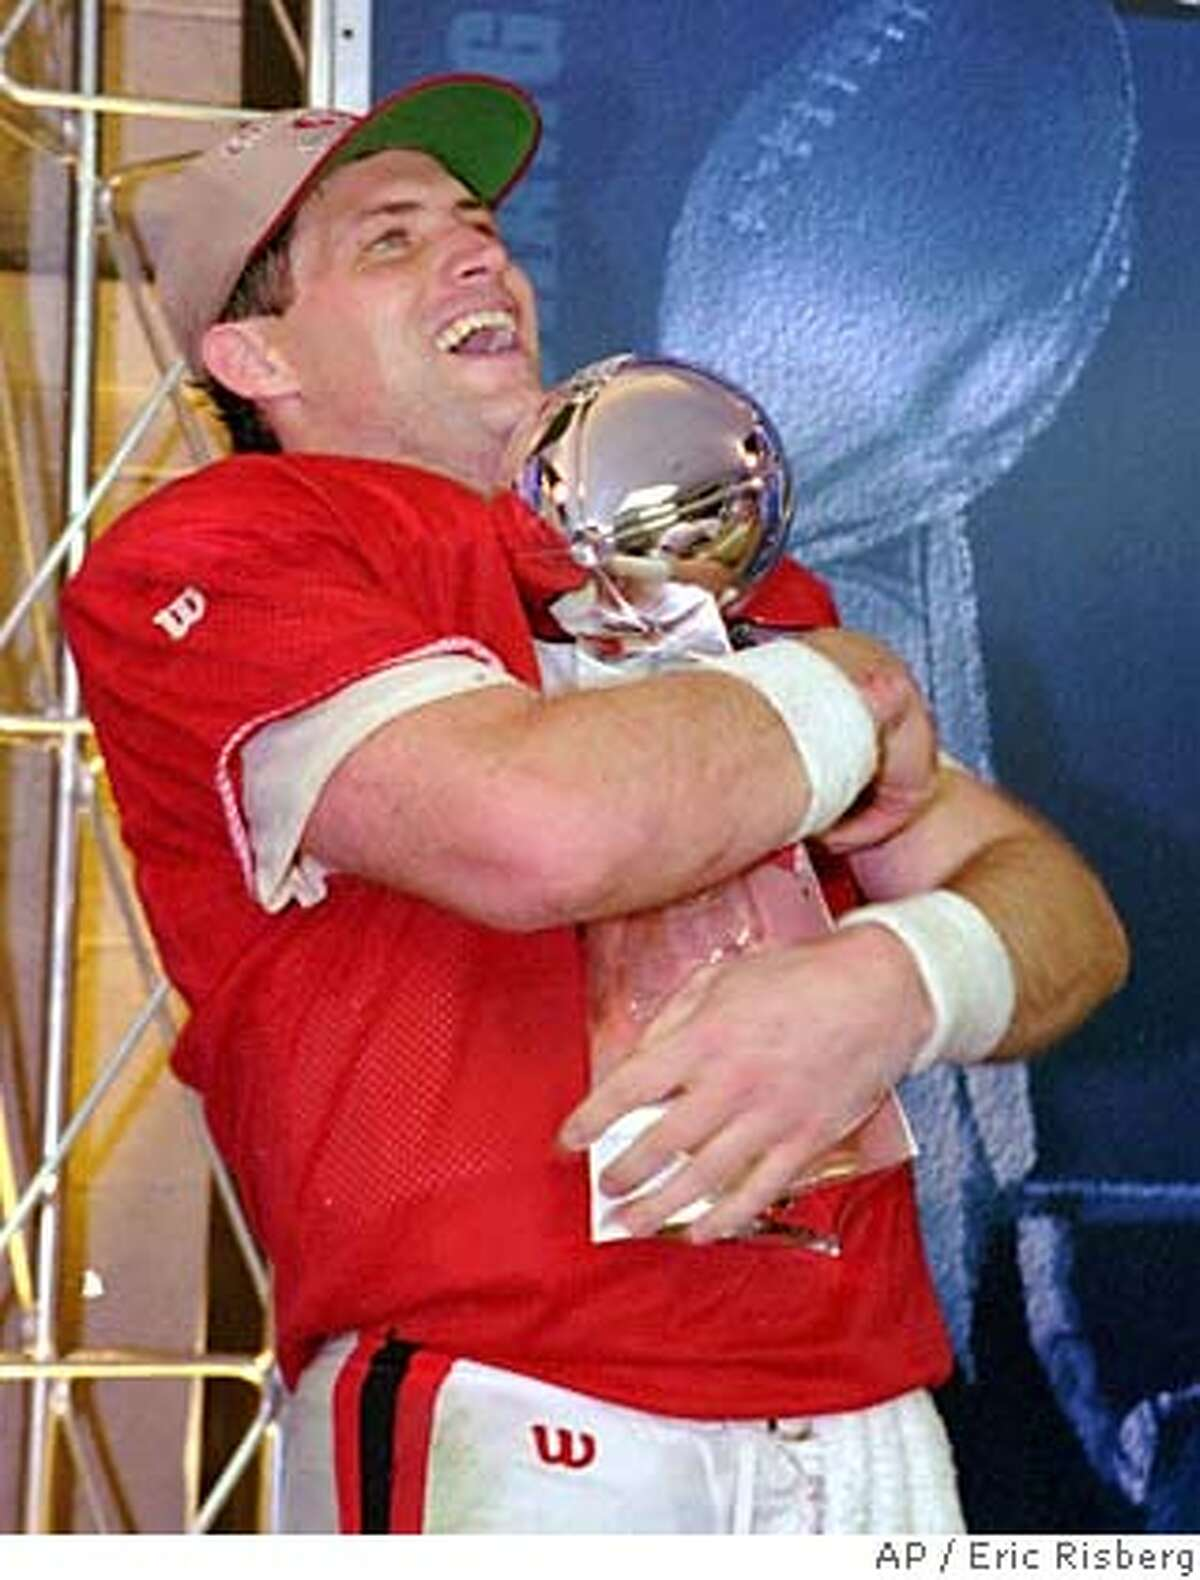 ** FILE ** San Francisco 49ers quarterback Steve Young hugs the Lombardi trophy after beating the San Diego Chargers 49-26 in Super Bowl XXIX at Miami's Joe Robbie Stadium, in this Jan. 29, 1995 photo. (AP Photo/Eric Risberg)